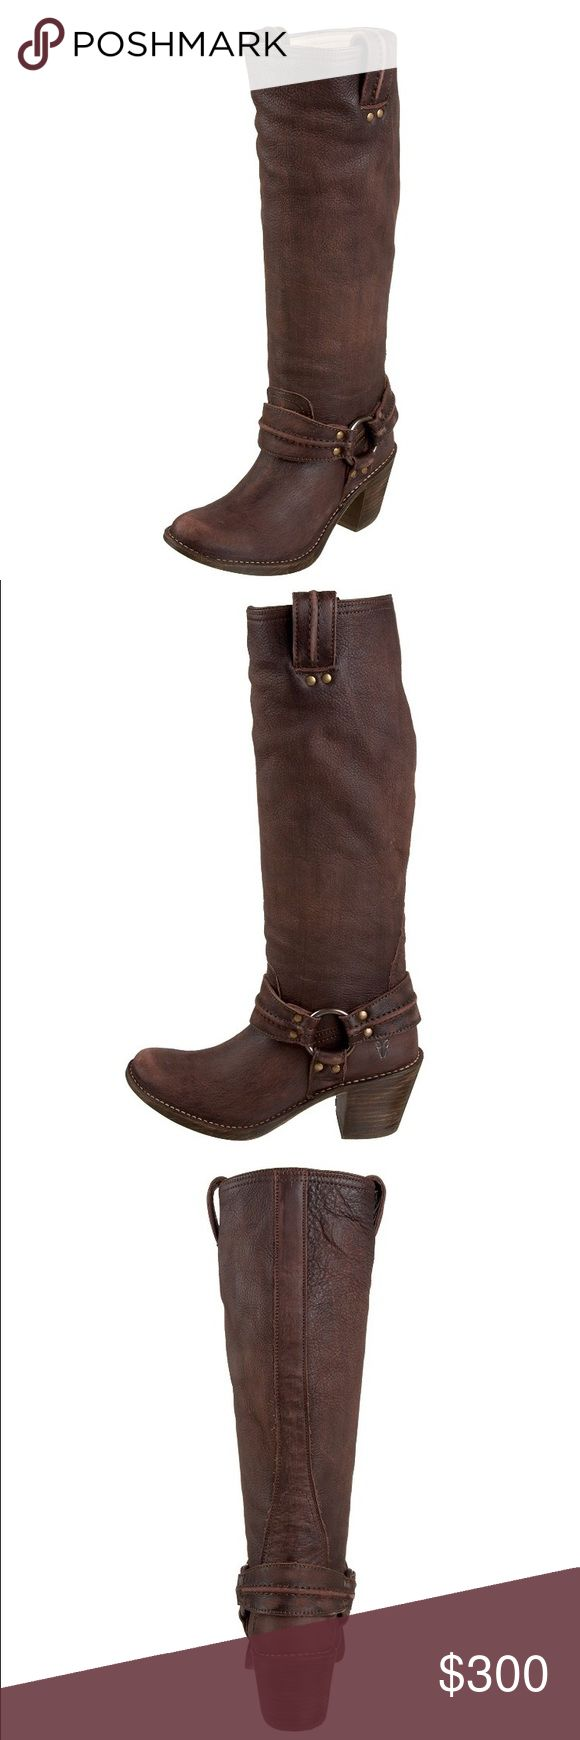 FRYE Women's Carmen Tall Harness Boots Nearly perfect condition - purchased brand new, worn once but I just don't wear heels anymore so these beauties are sitting in their box on my closet. They are very comfortable and look fab with anything you wear! Frye Shoes Heeled Boots